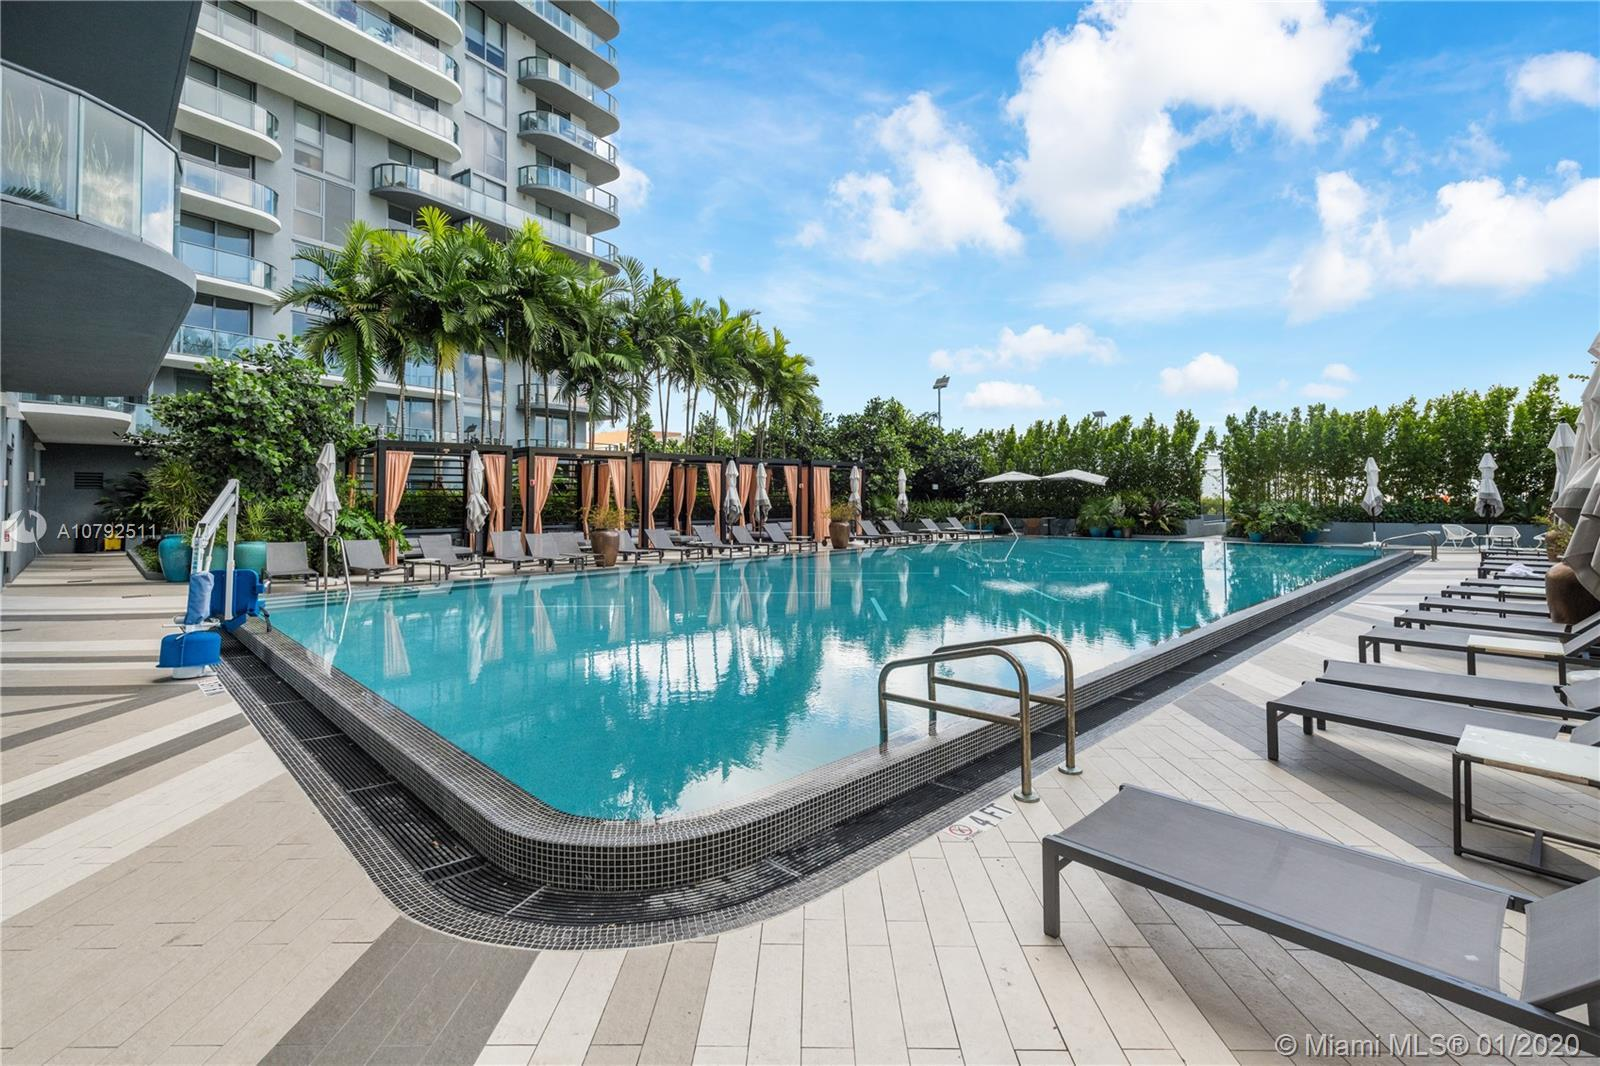 MIDTOWN-MIAMI NEWEST BUILDING! READY TO MOVE-IN FANTASTIC 1 BEDROOM + DEN AND 1+1/2 BATHS CONDO WITH